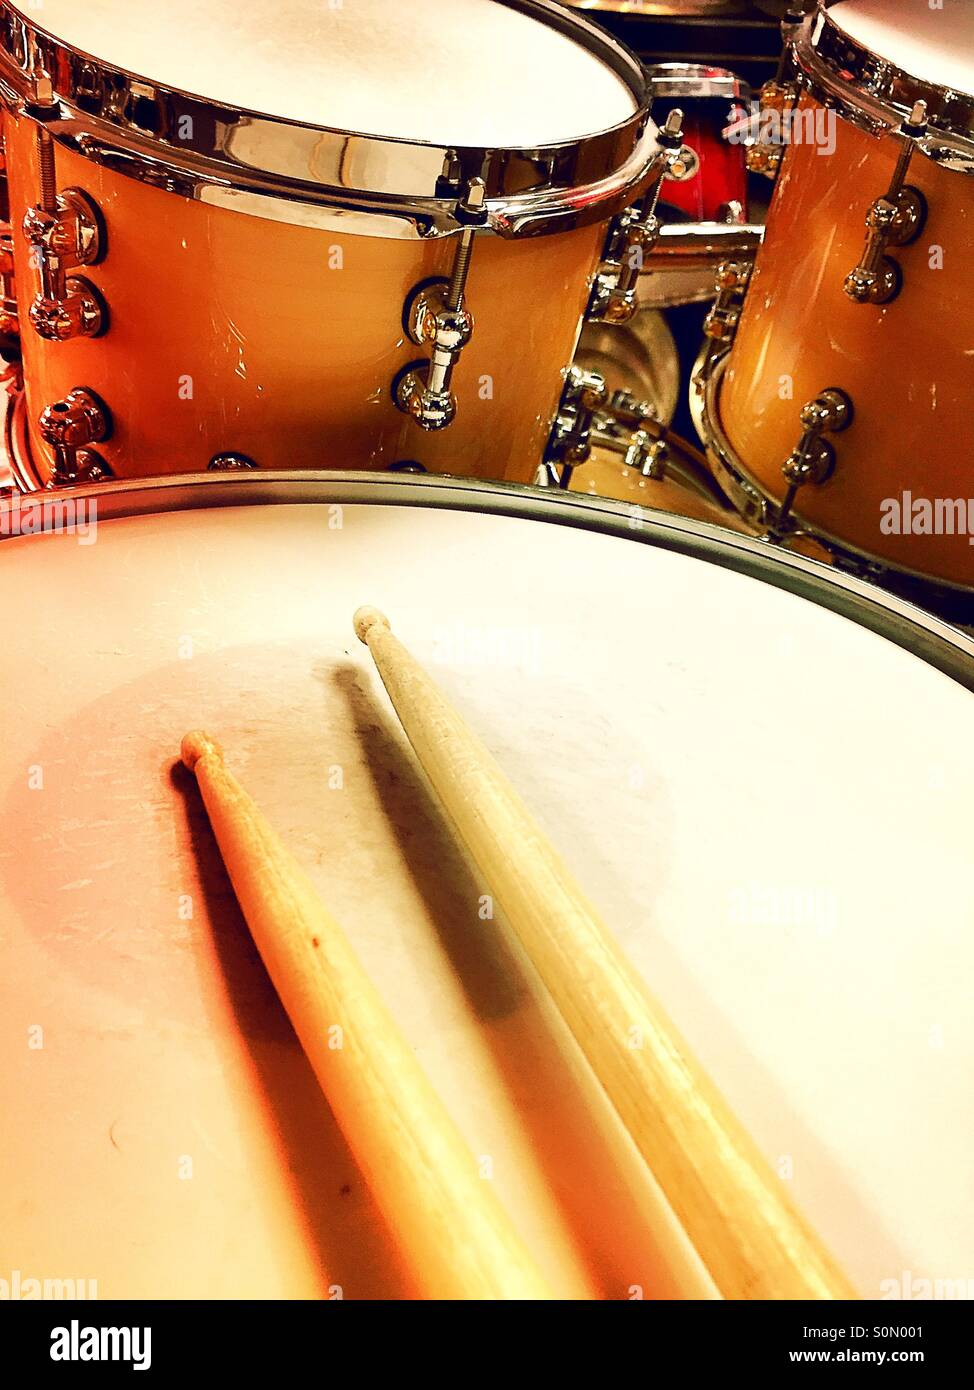 Drumsticks And Drum Stock Photos & Drumsticks And Drum Stock Images ...